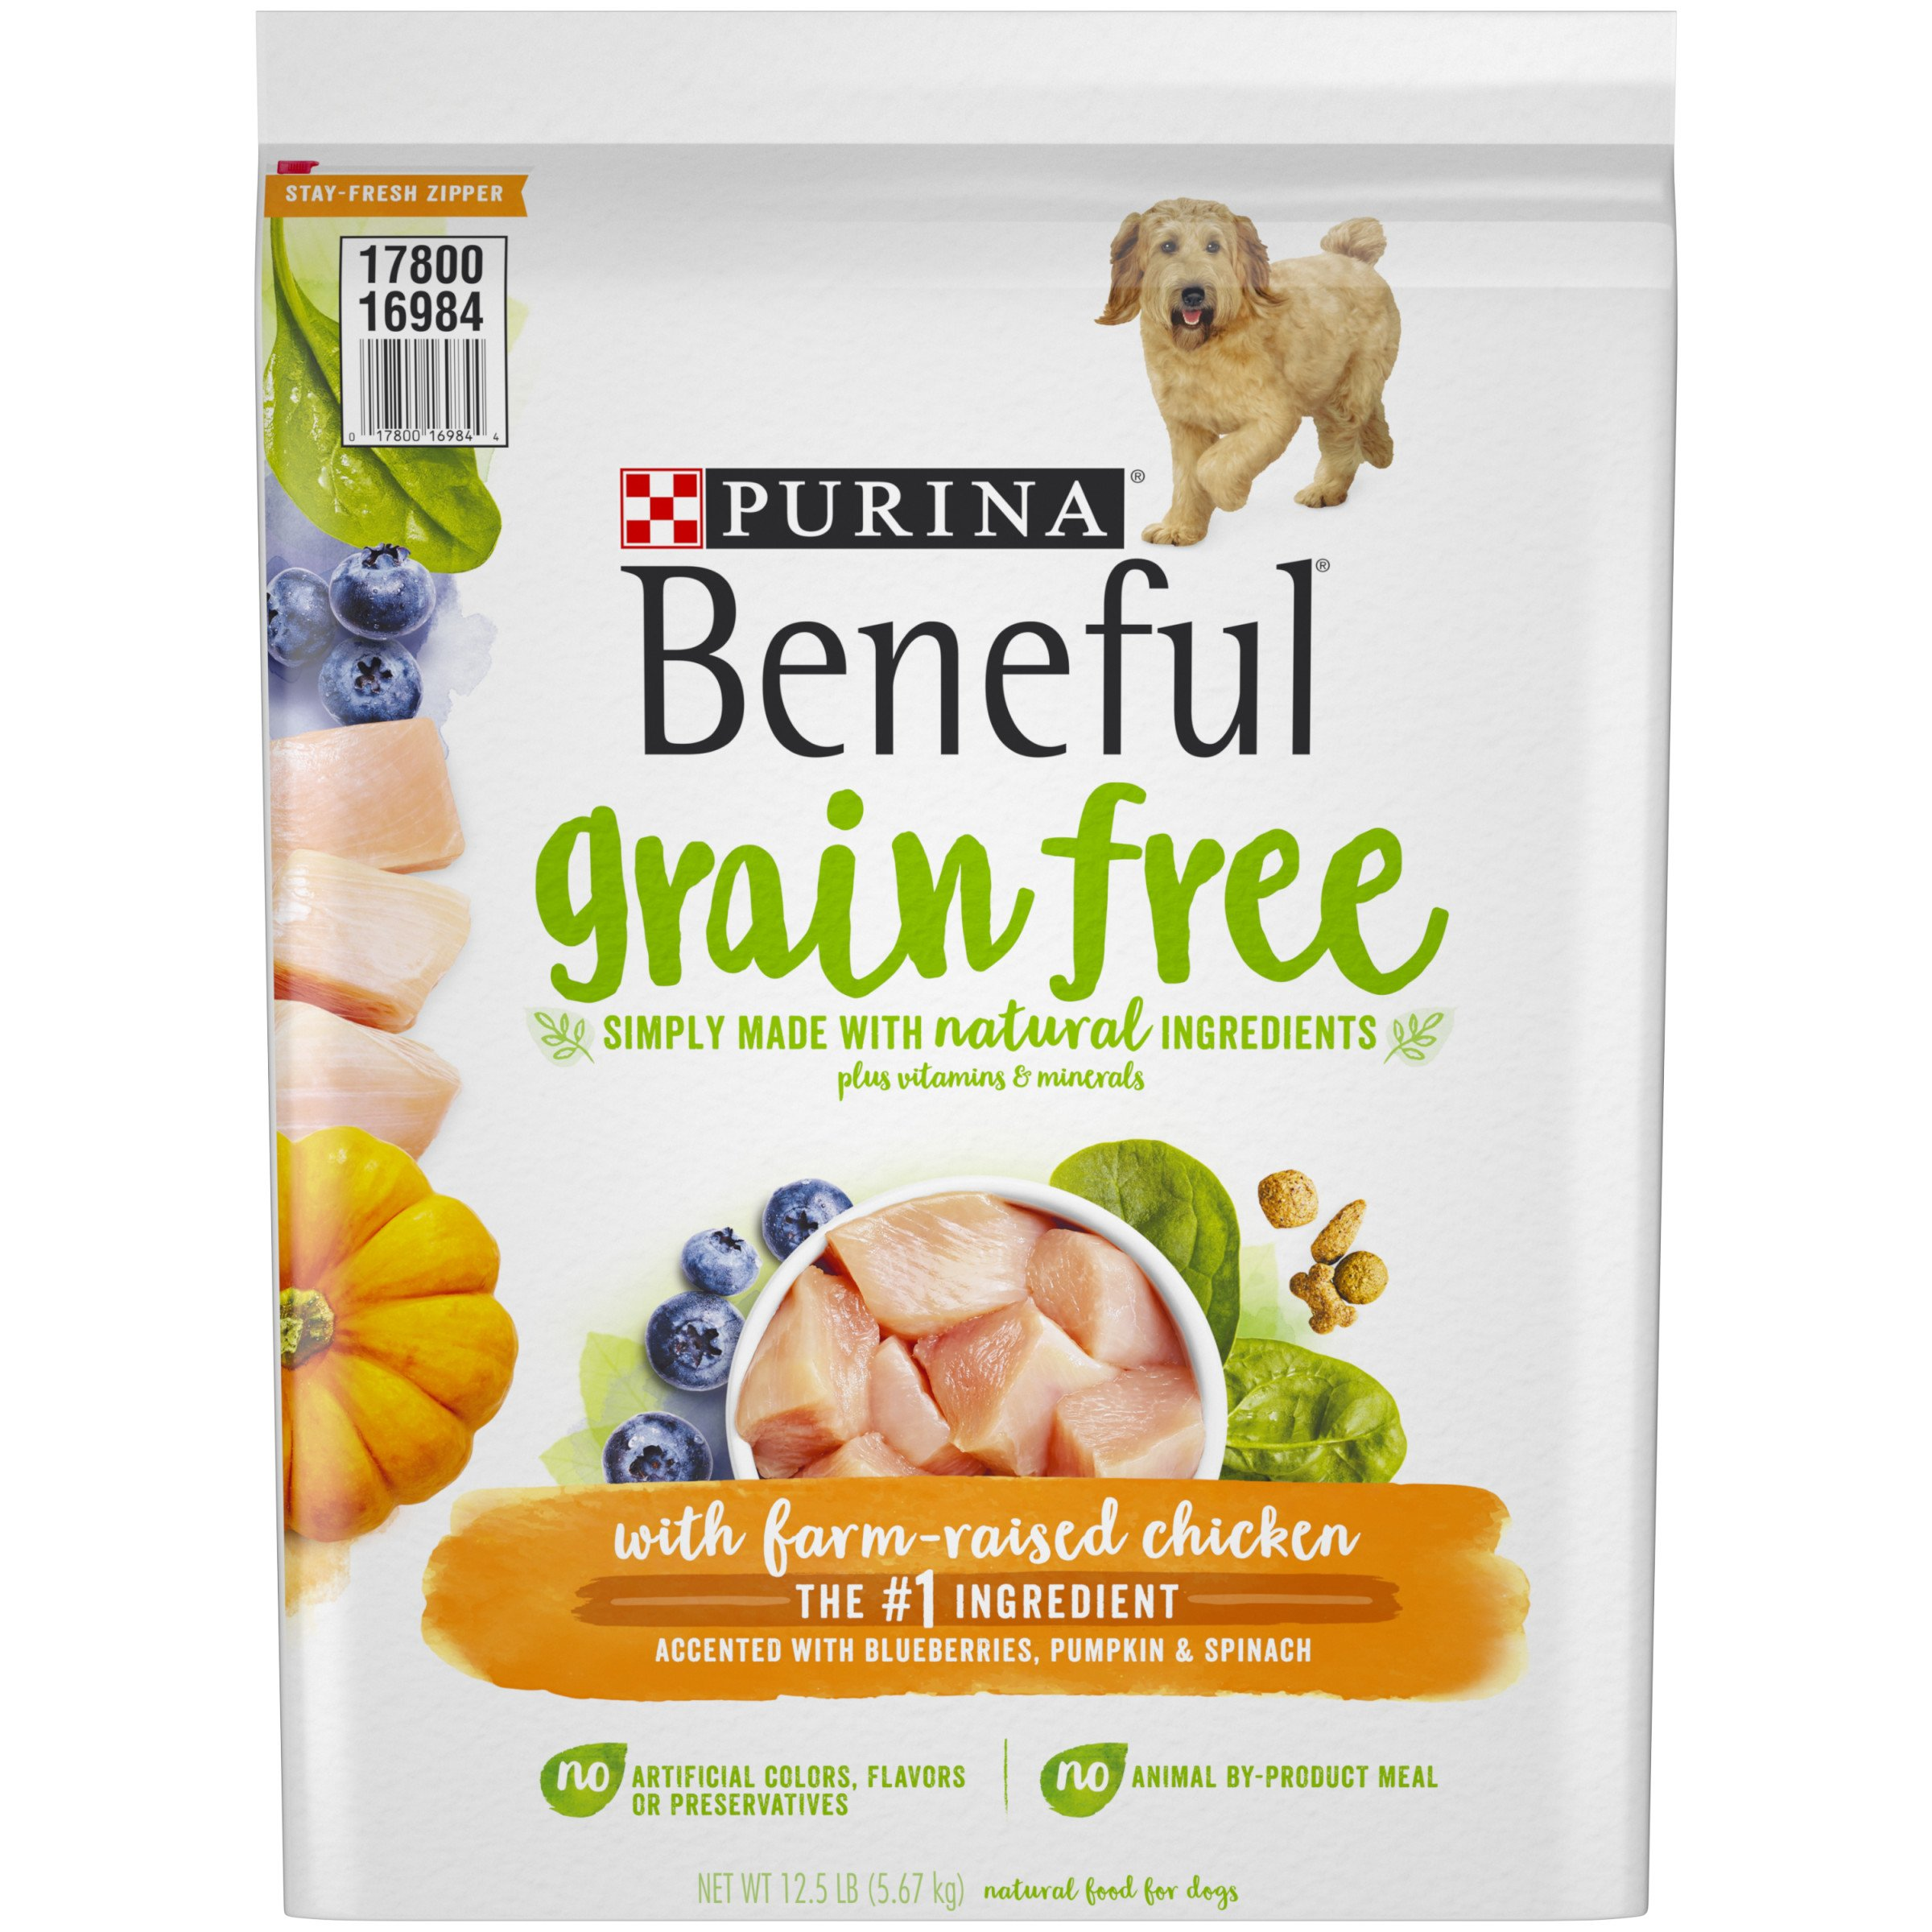 Purina Beneful Grain-Free with Real Farm-Raised Chicken Adult Dry Dog Food - 12.5 lb. Bag